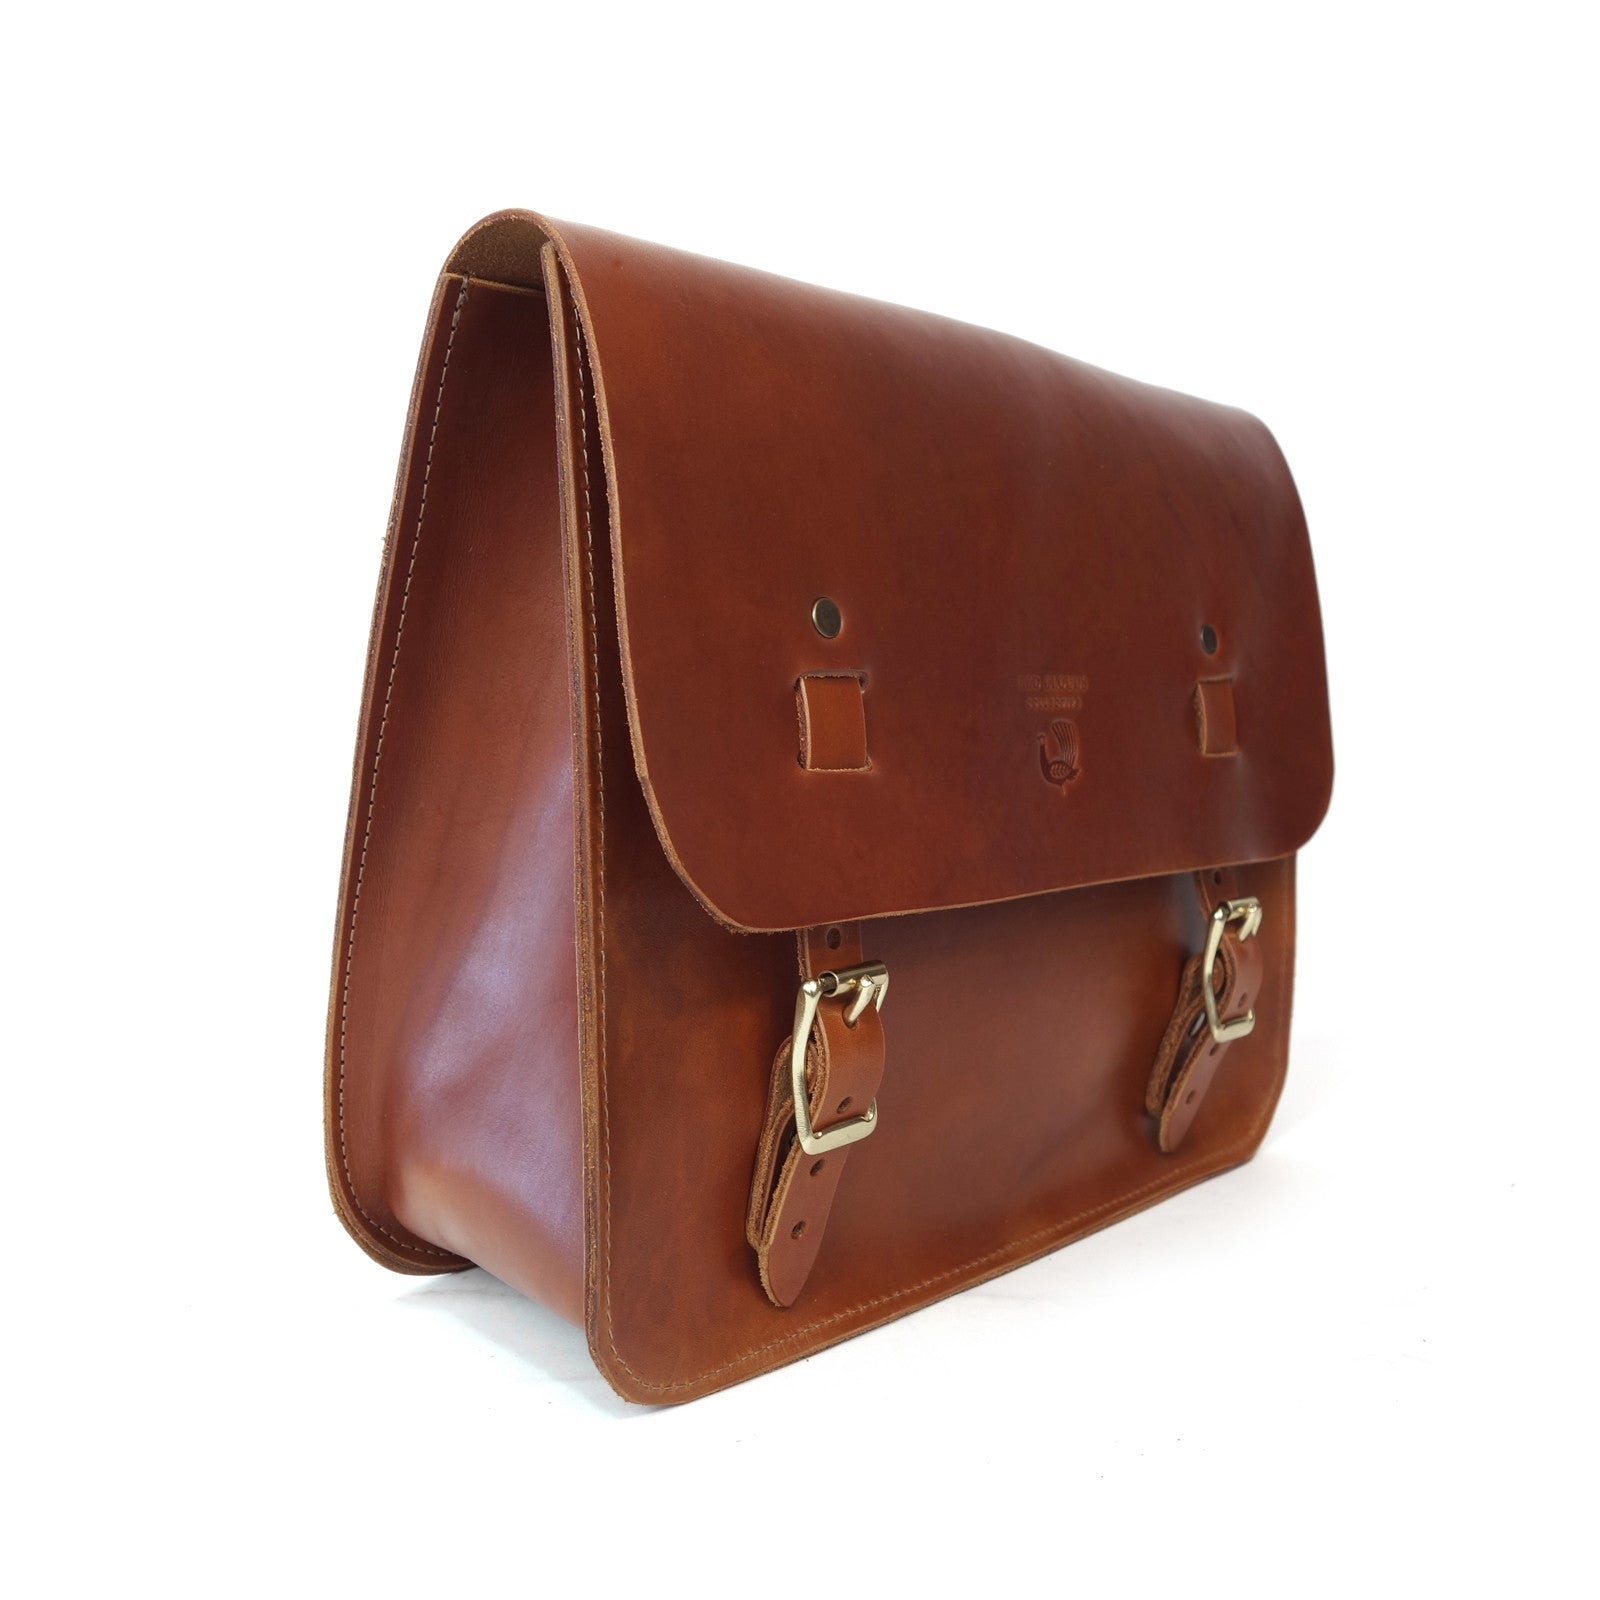 72f6941c5e9 Leather Saddle Bag - Saddle Tan - Red Clouds Collective - Made in ...